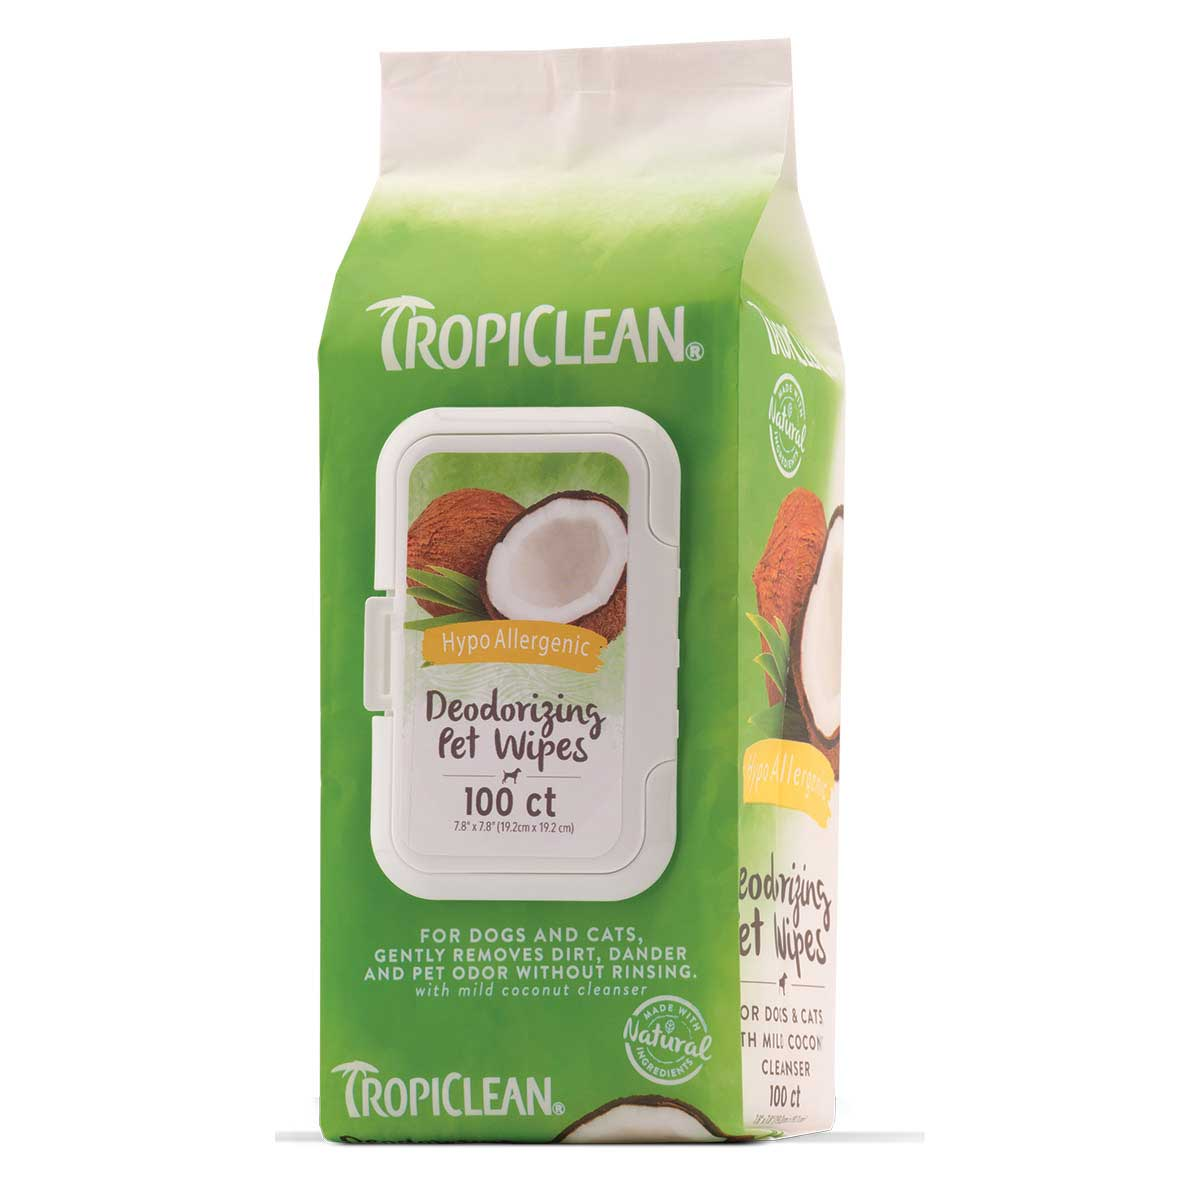 Tropiclean Deodorizing Pet Wipes Hypo-Allergenic 100 Count at Ryan's Pet Supplies